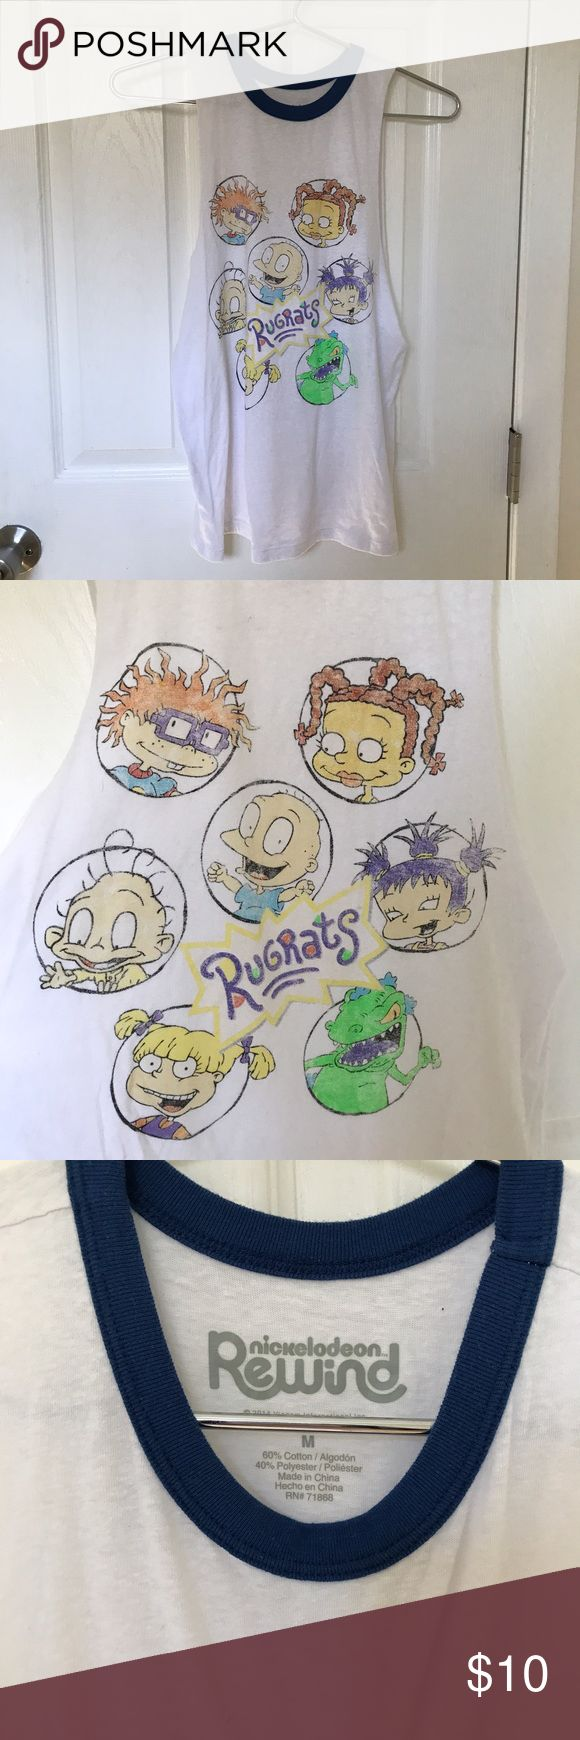 Rugrats vintage tank top nickelodeon muscle tee This was maybe worn once or twice. Vintage style rugrats tank top or muscle tee. Size M. 💜MAKE AN OFFER💜  ⭐️ FOR LOWER ITEM PRICES AND SHIPPING PRICES BUY ON MY MERCARI! (shop.sherri) ⭐️  tags: American eagle, AEO, VS pink, Victoria's Secret pink, PINK, ugg, birkenstocks, bath and body works, B&BW, Hollister, urban outfitters, Alex and Ani, Michael kors, Vera Bradley, lululemon, coach, Nike, adidas, Mac, Kylie cosmetics, Morphe, urban decay…